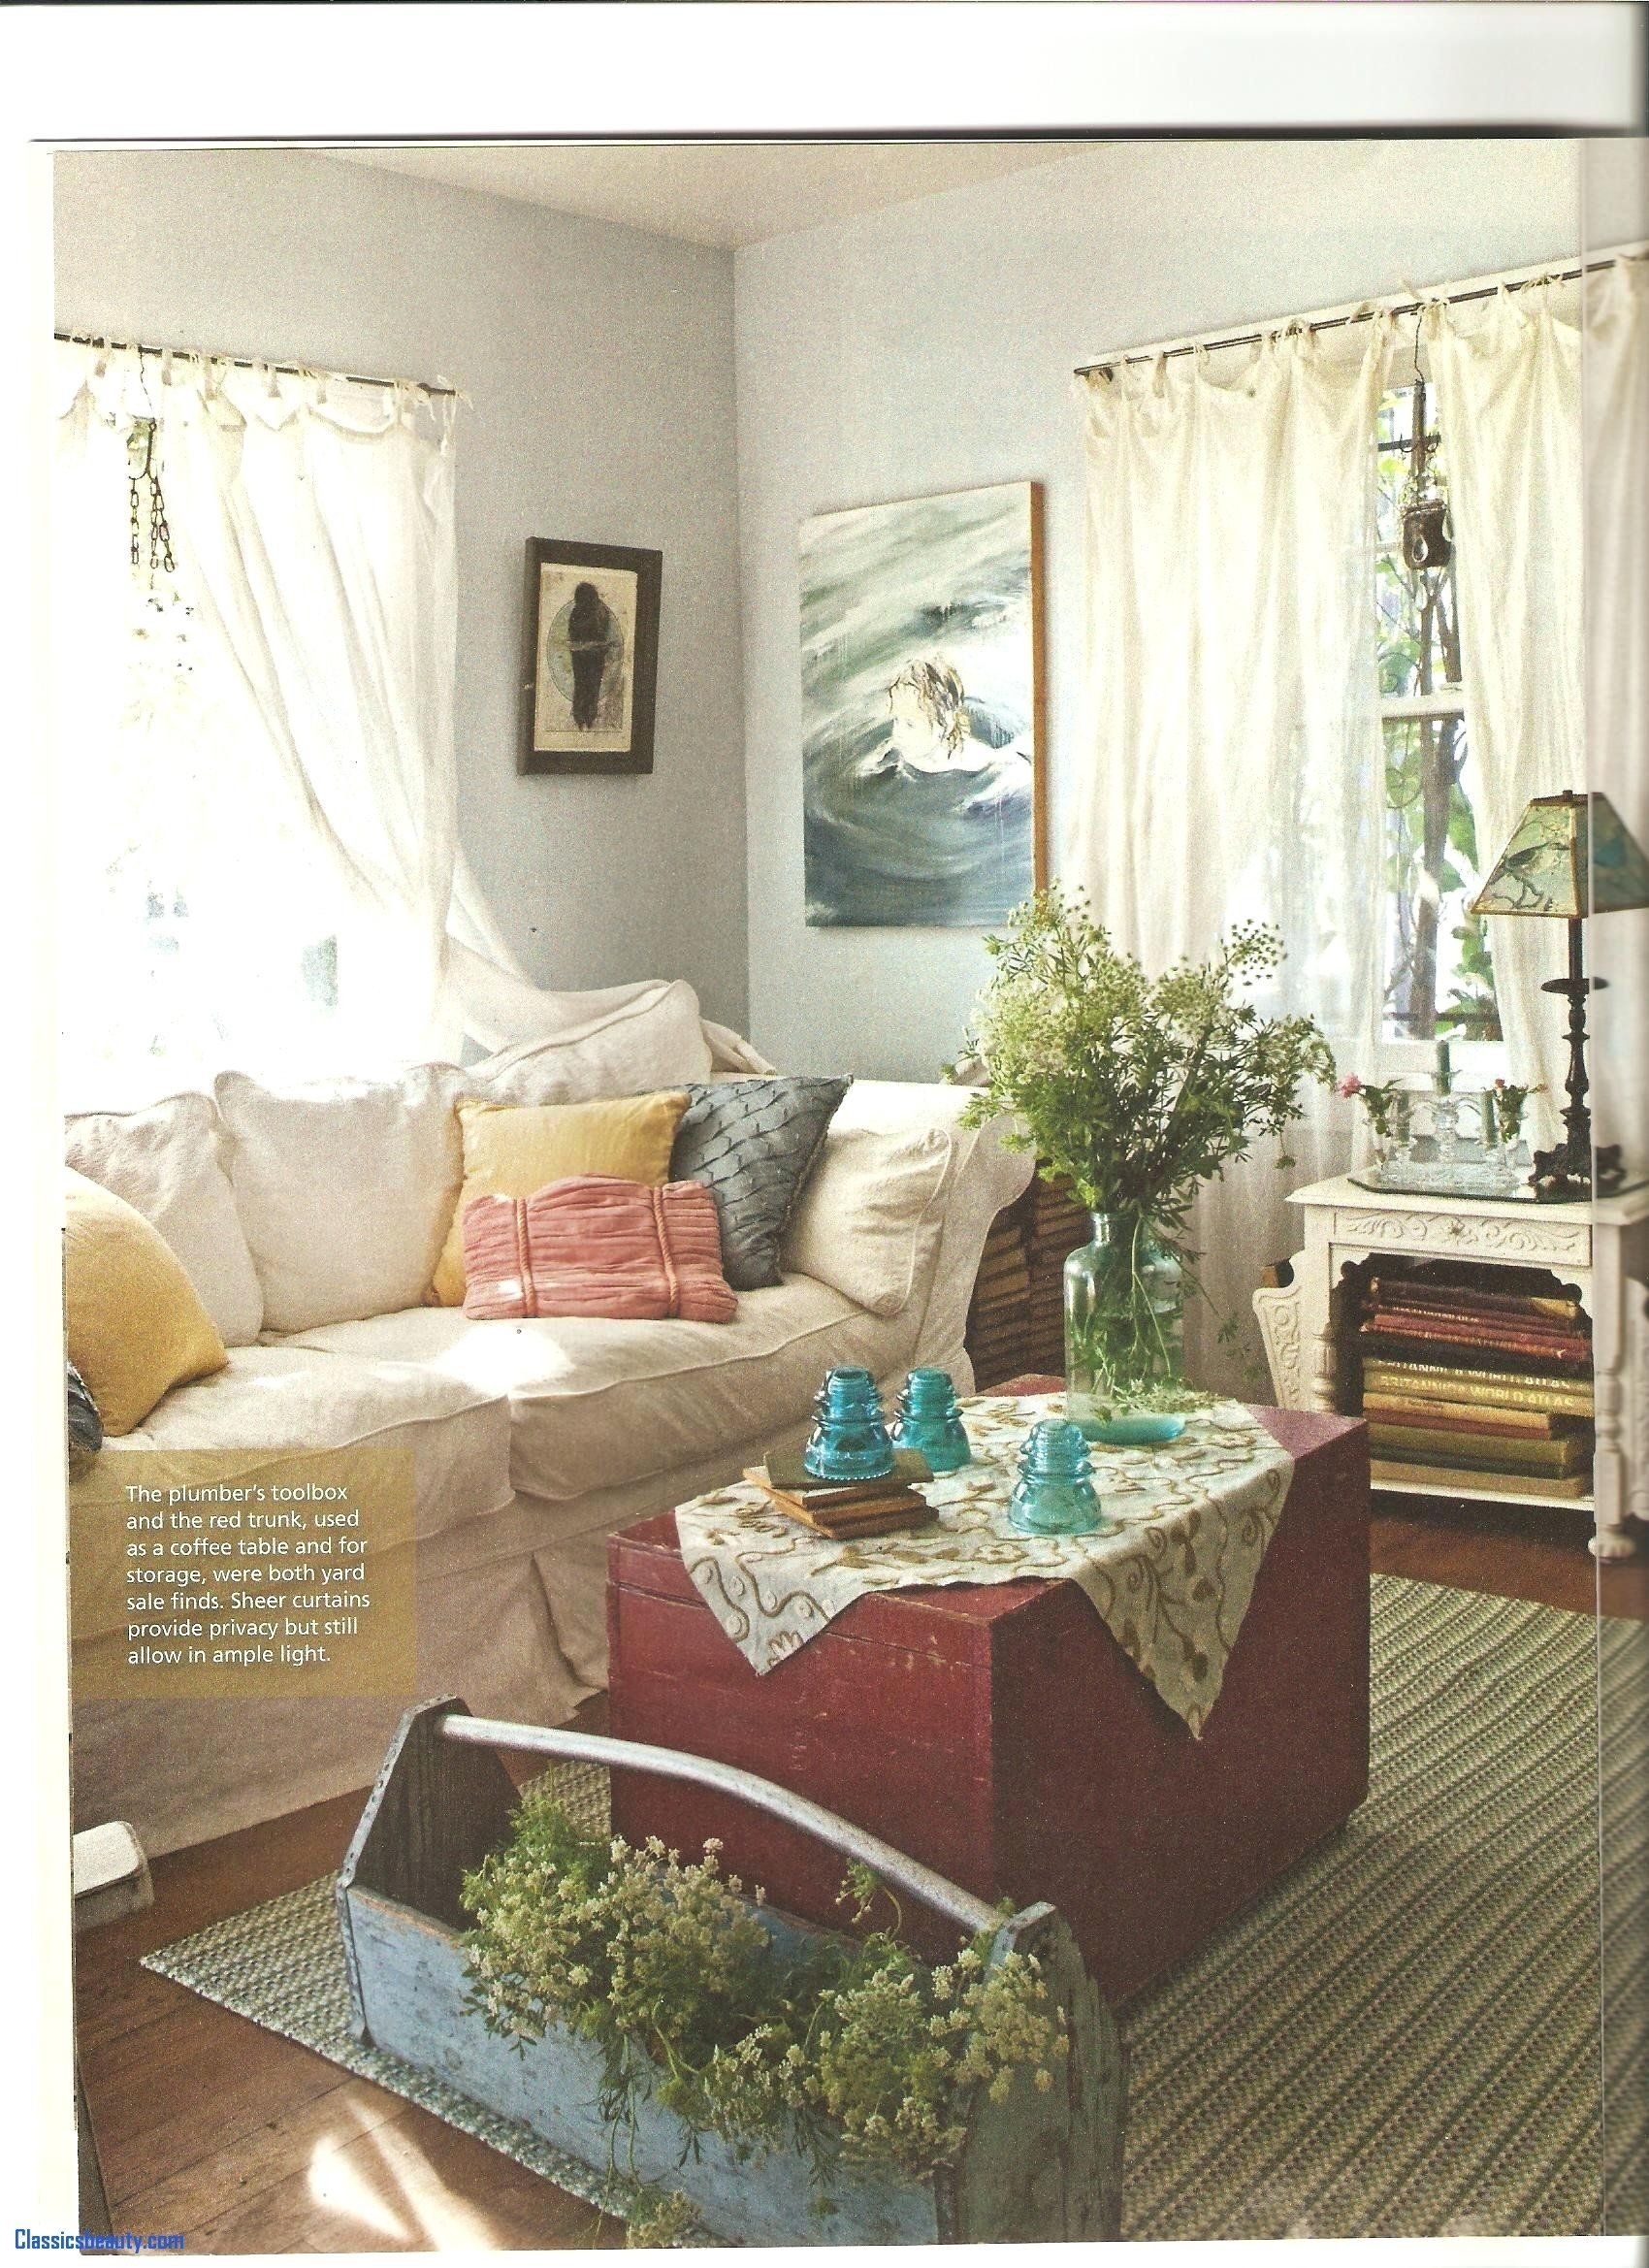 10 Pretty French Country Cottage Decorating Ideas cottage decorating elegant decorations french country cottage 2020